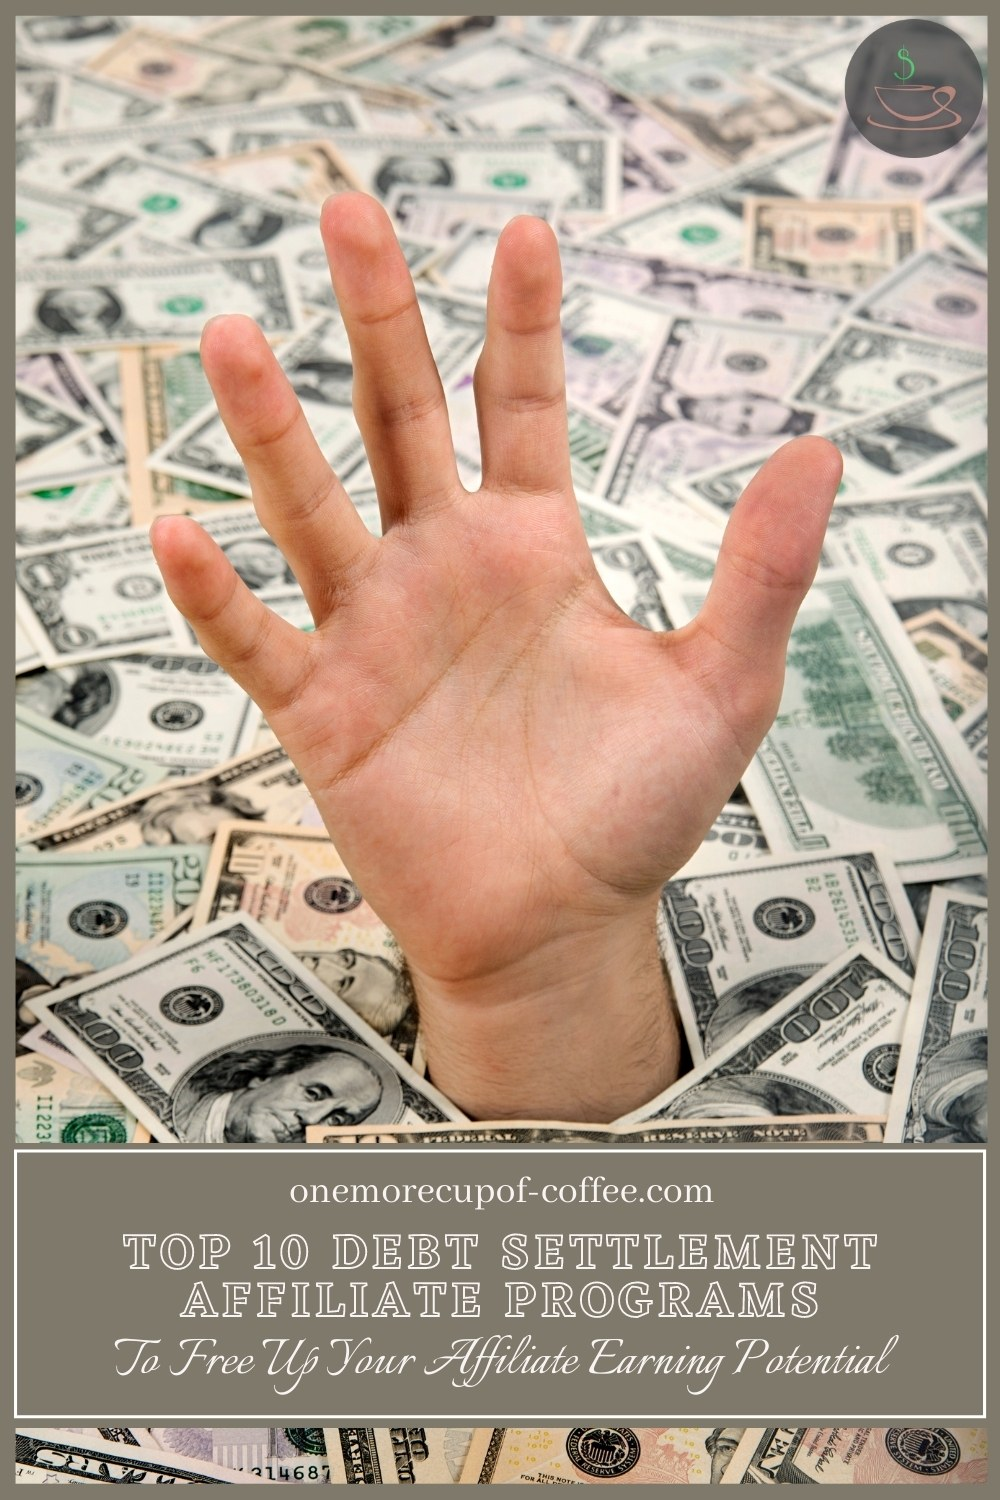 closeup image of an open hand reaching out of a pile of dollar bills, with text overlay